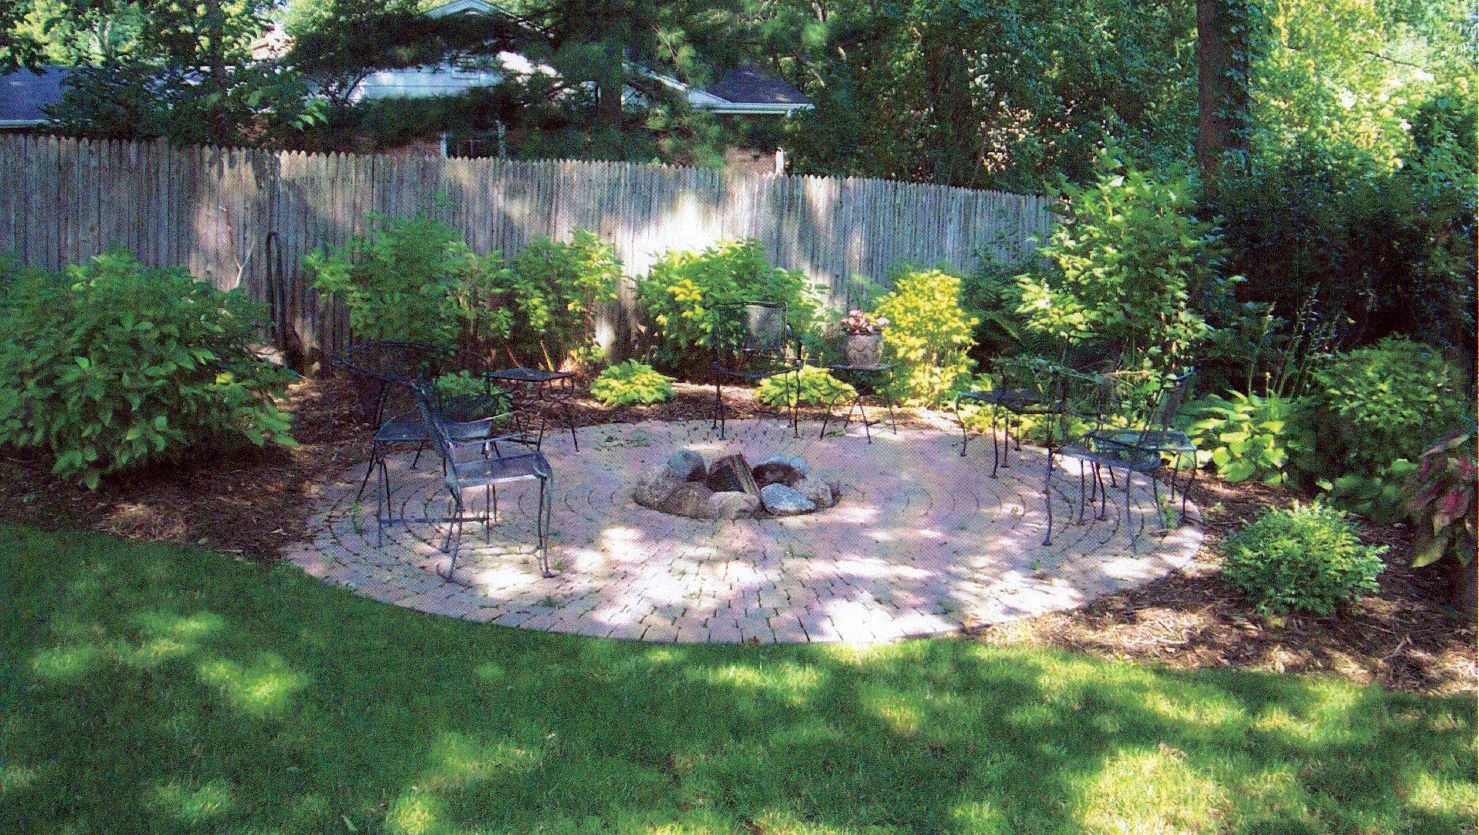 Landscape Design Ideas Backyard backyard landscaping ideasswimming pool designhomesthetics High Resolution Image Hall Design Backyard Designs Backyard Landscape Re Marshall Nursery Backyard Ideas Home Depot Diy Backyard Designs And Hall